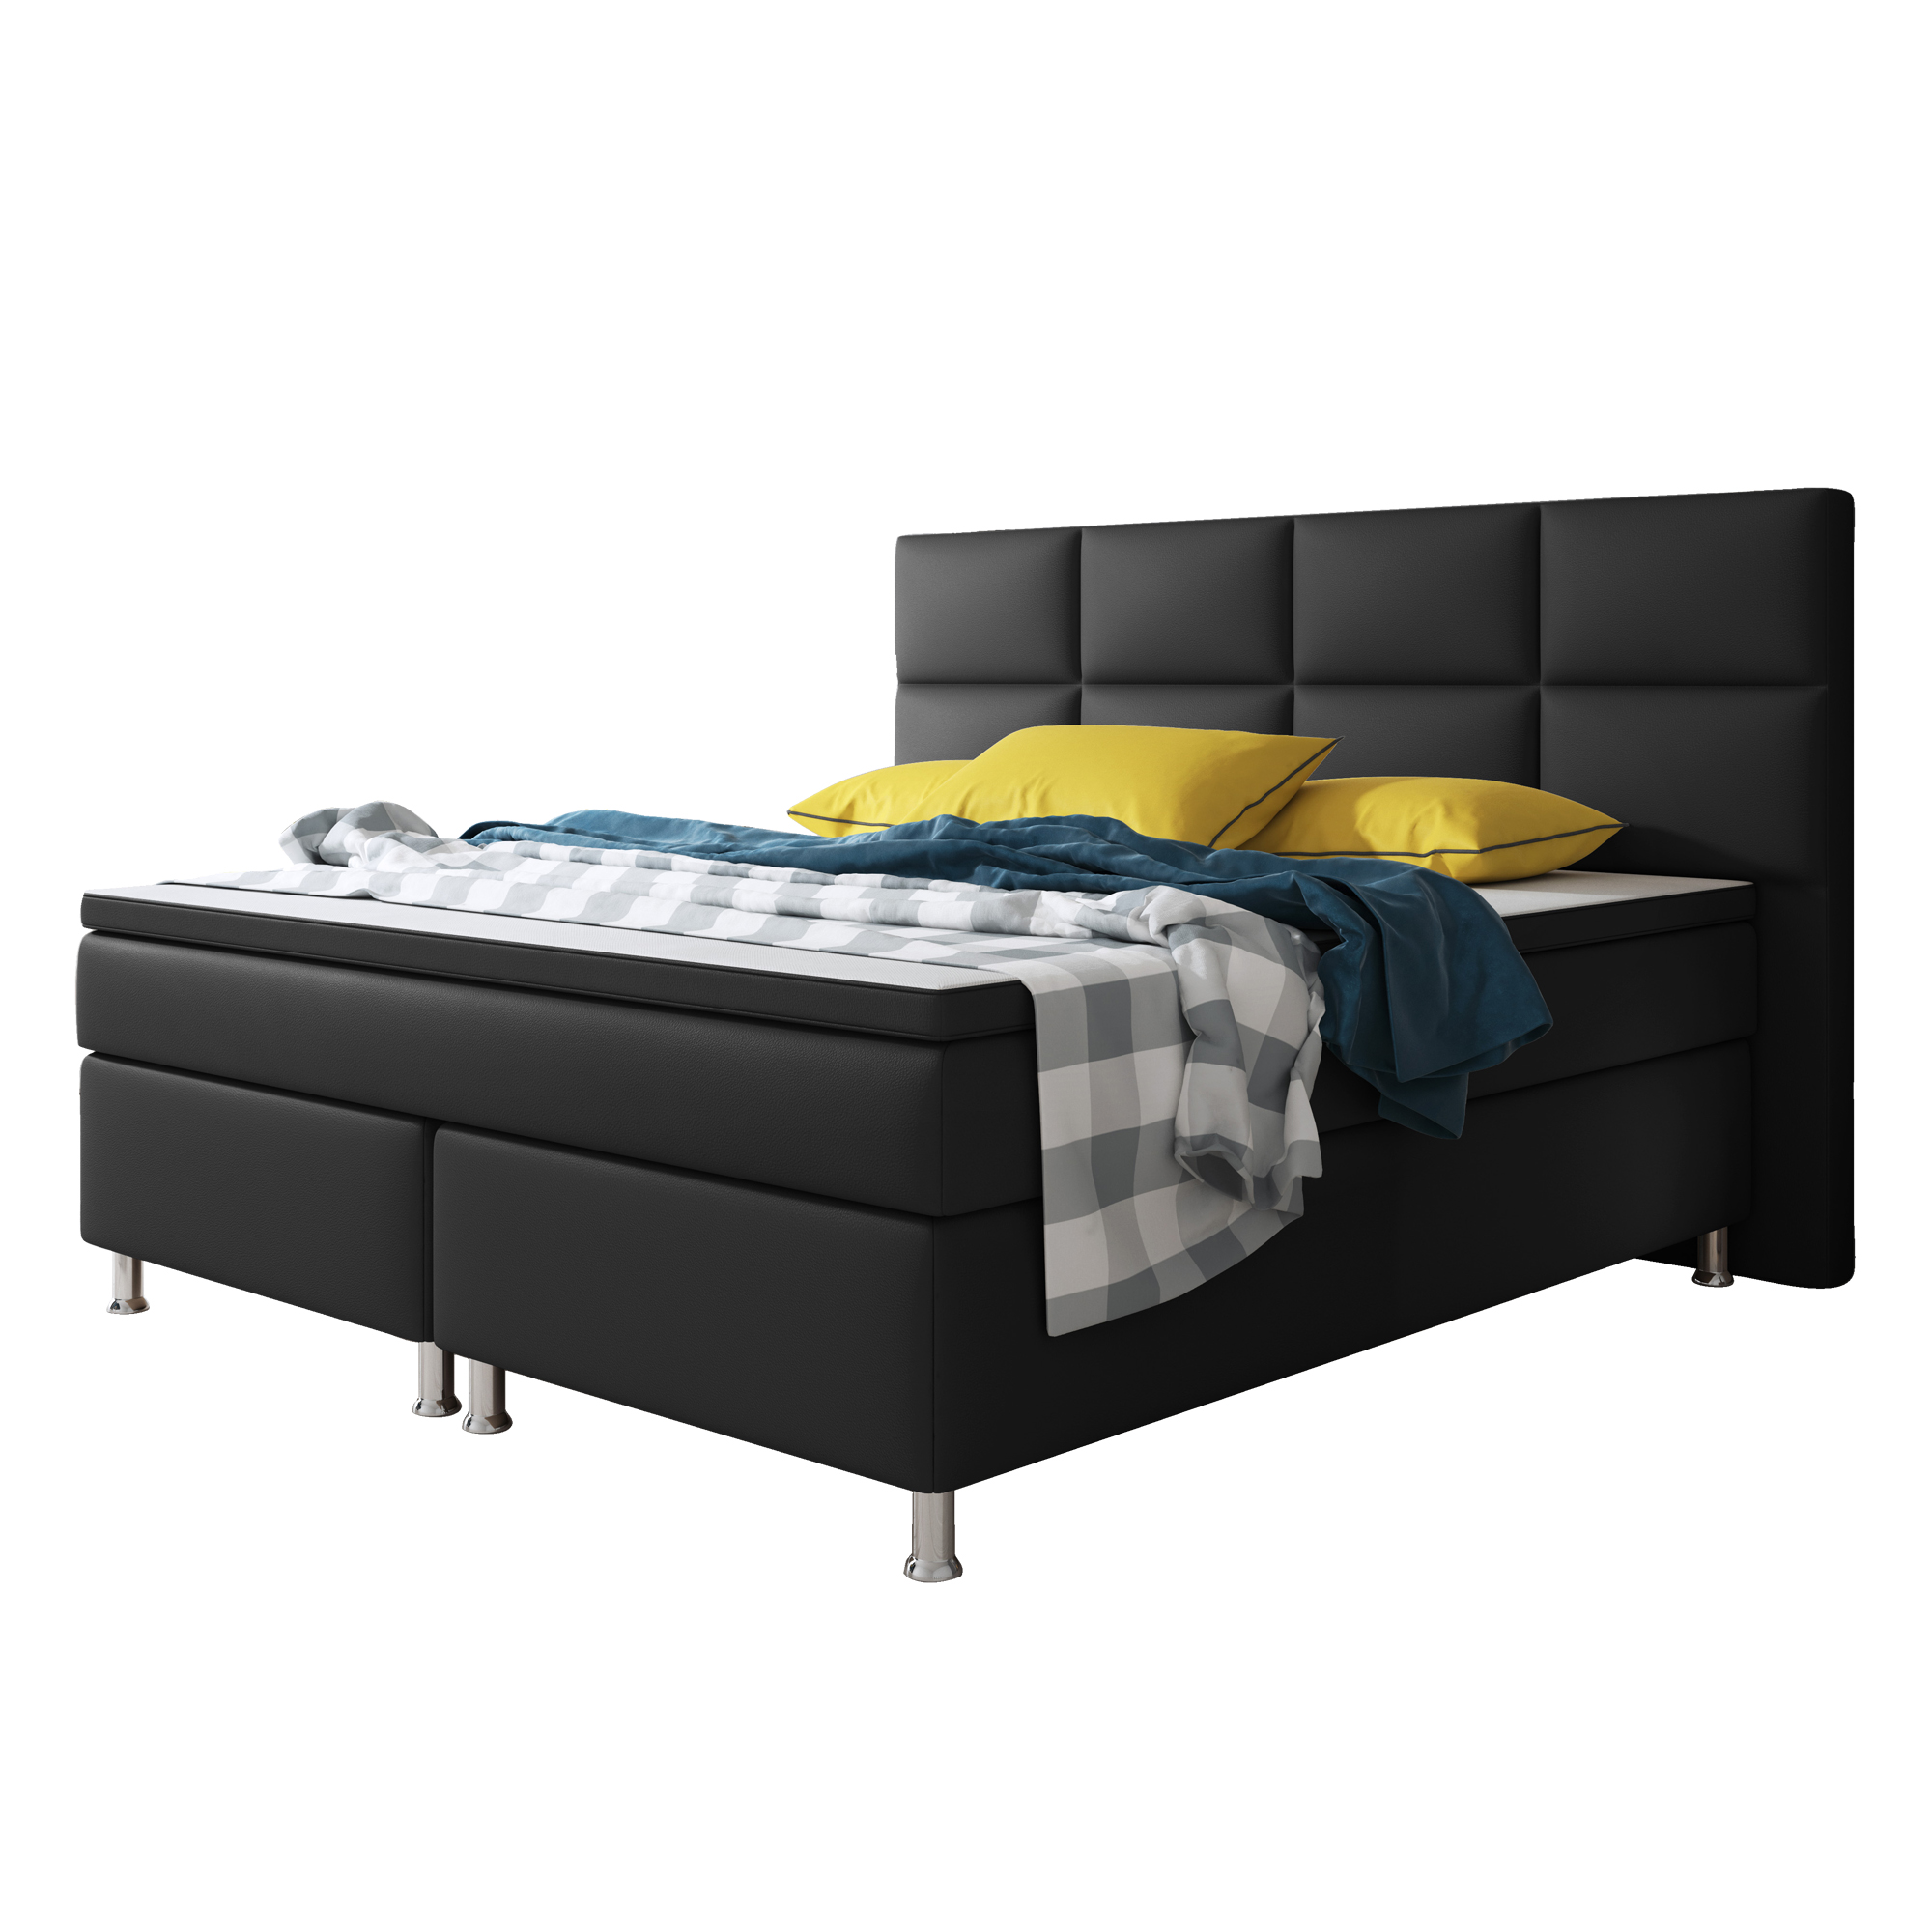 boxspringbett miami 180x200 cm kunstleder schwarz schlafen boxspringbetten. Black Bedroom Furniture Sets. Home Design Ideas